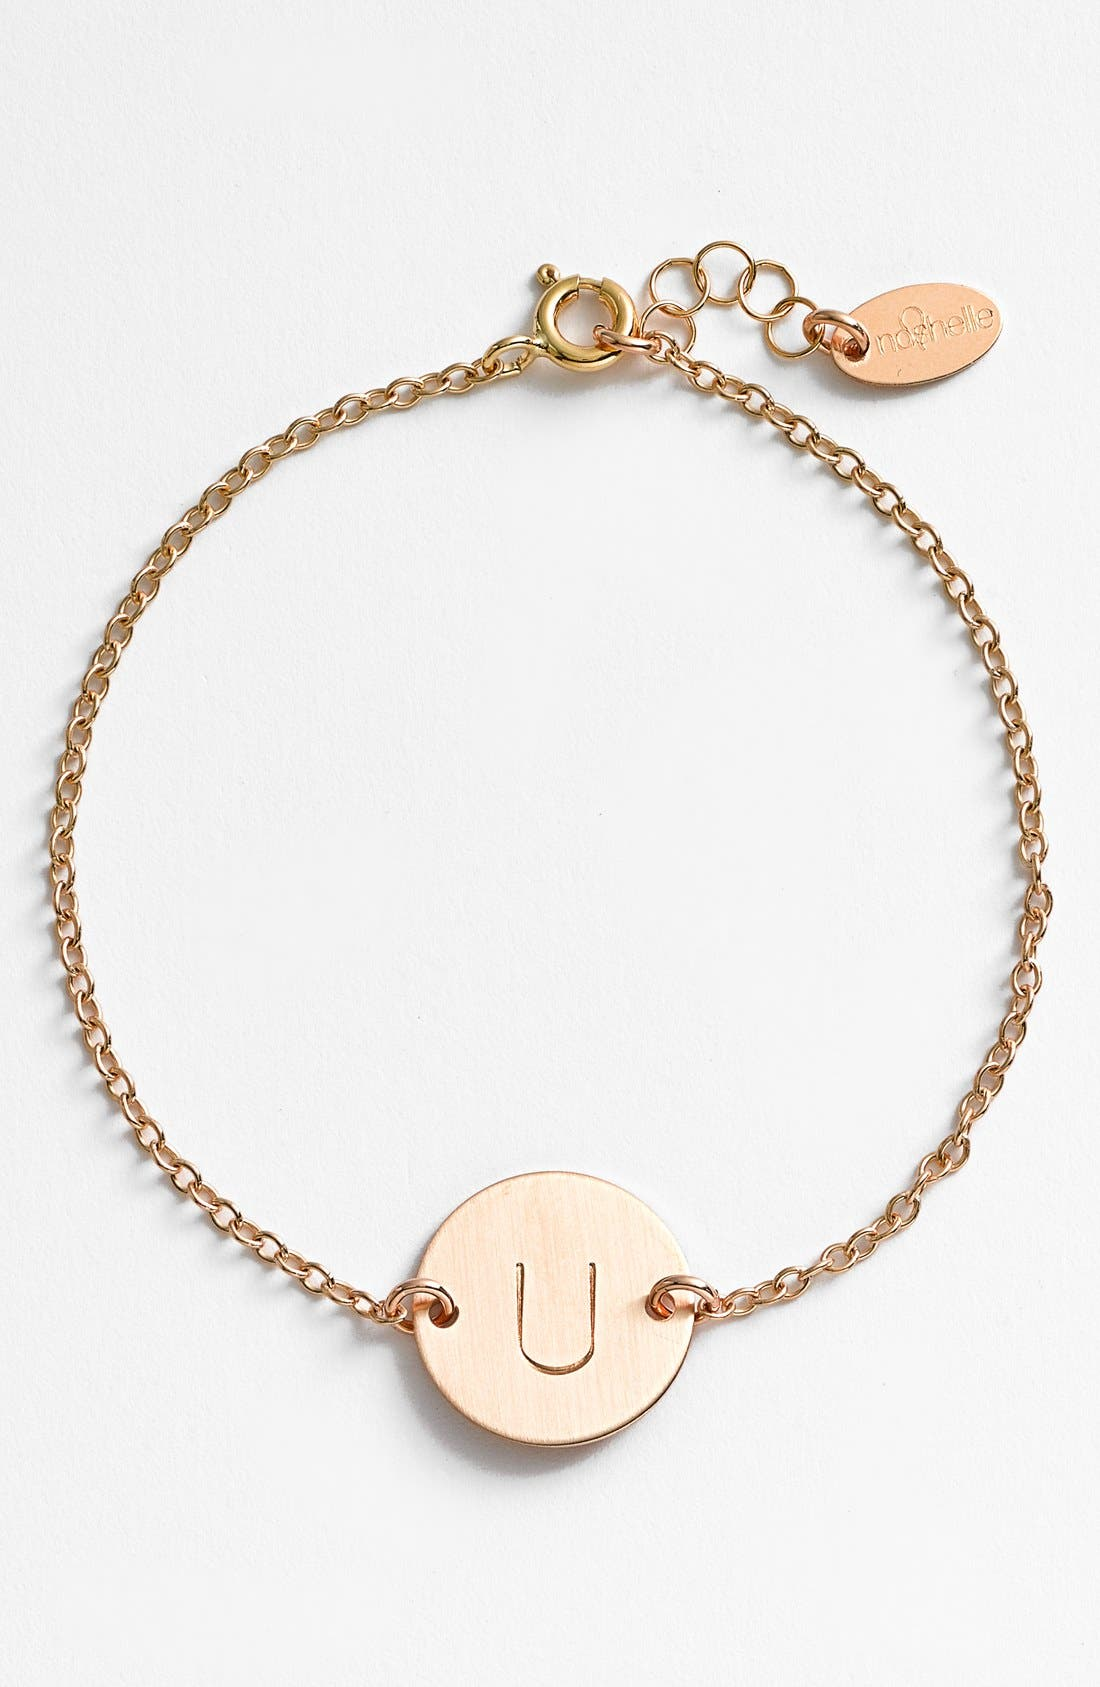 14k-Gold Fill Initial Disc Bracelet,                         Main,                         color, 14K GOLD FILL U